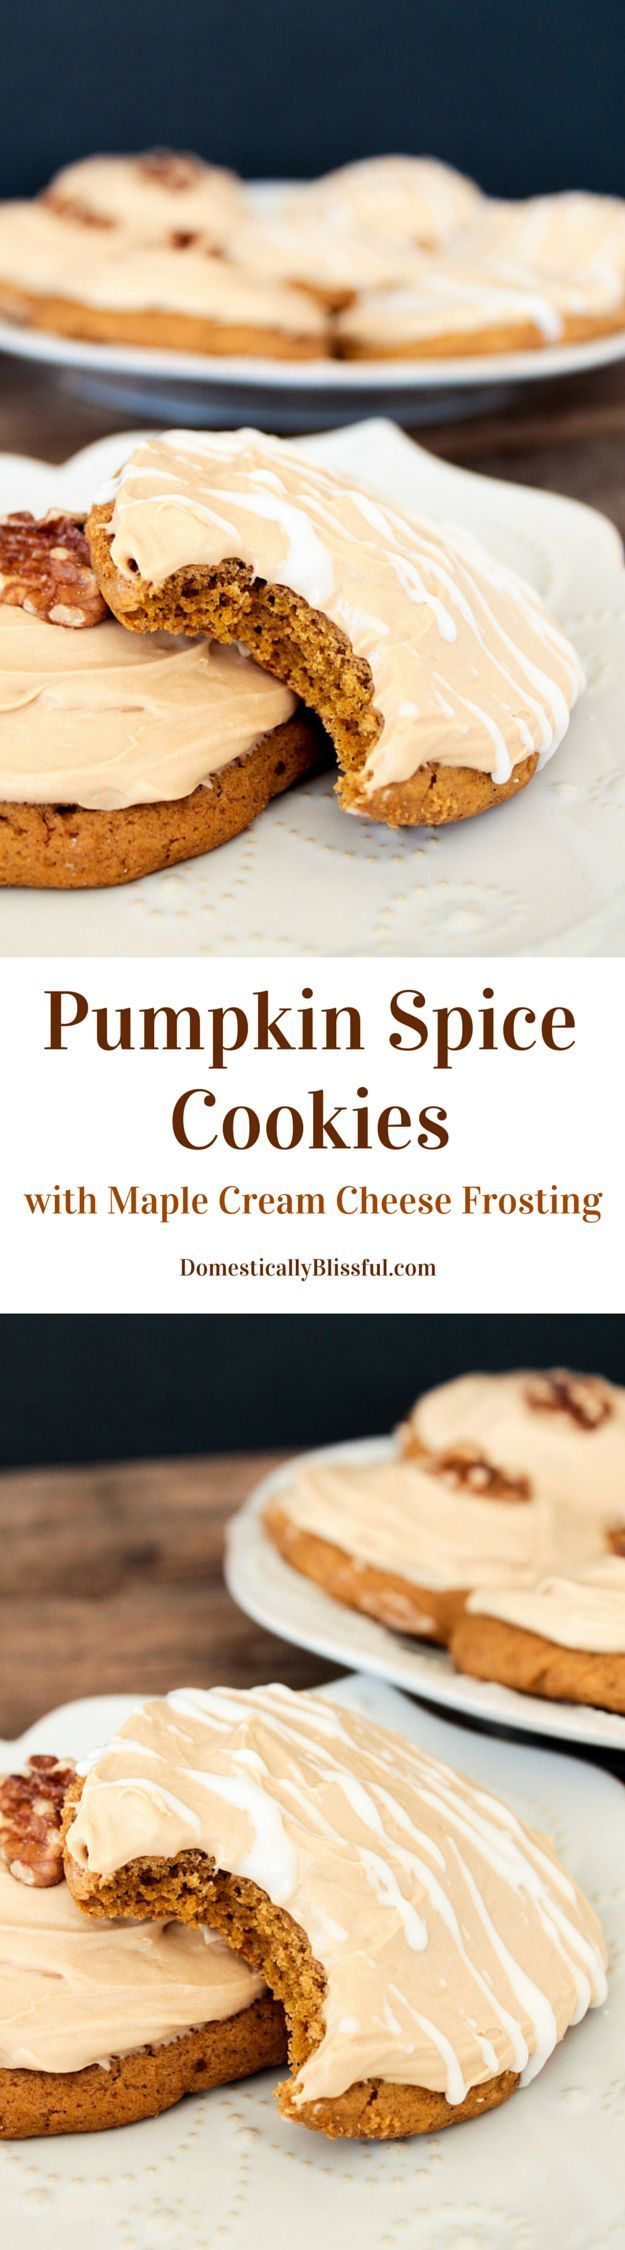 1000+ ideas about Maple Cream on Pinterest | Cream Cheeses ...